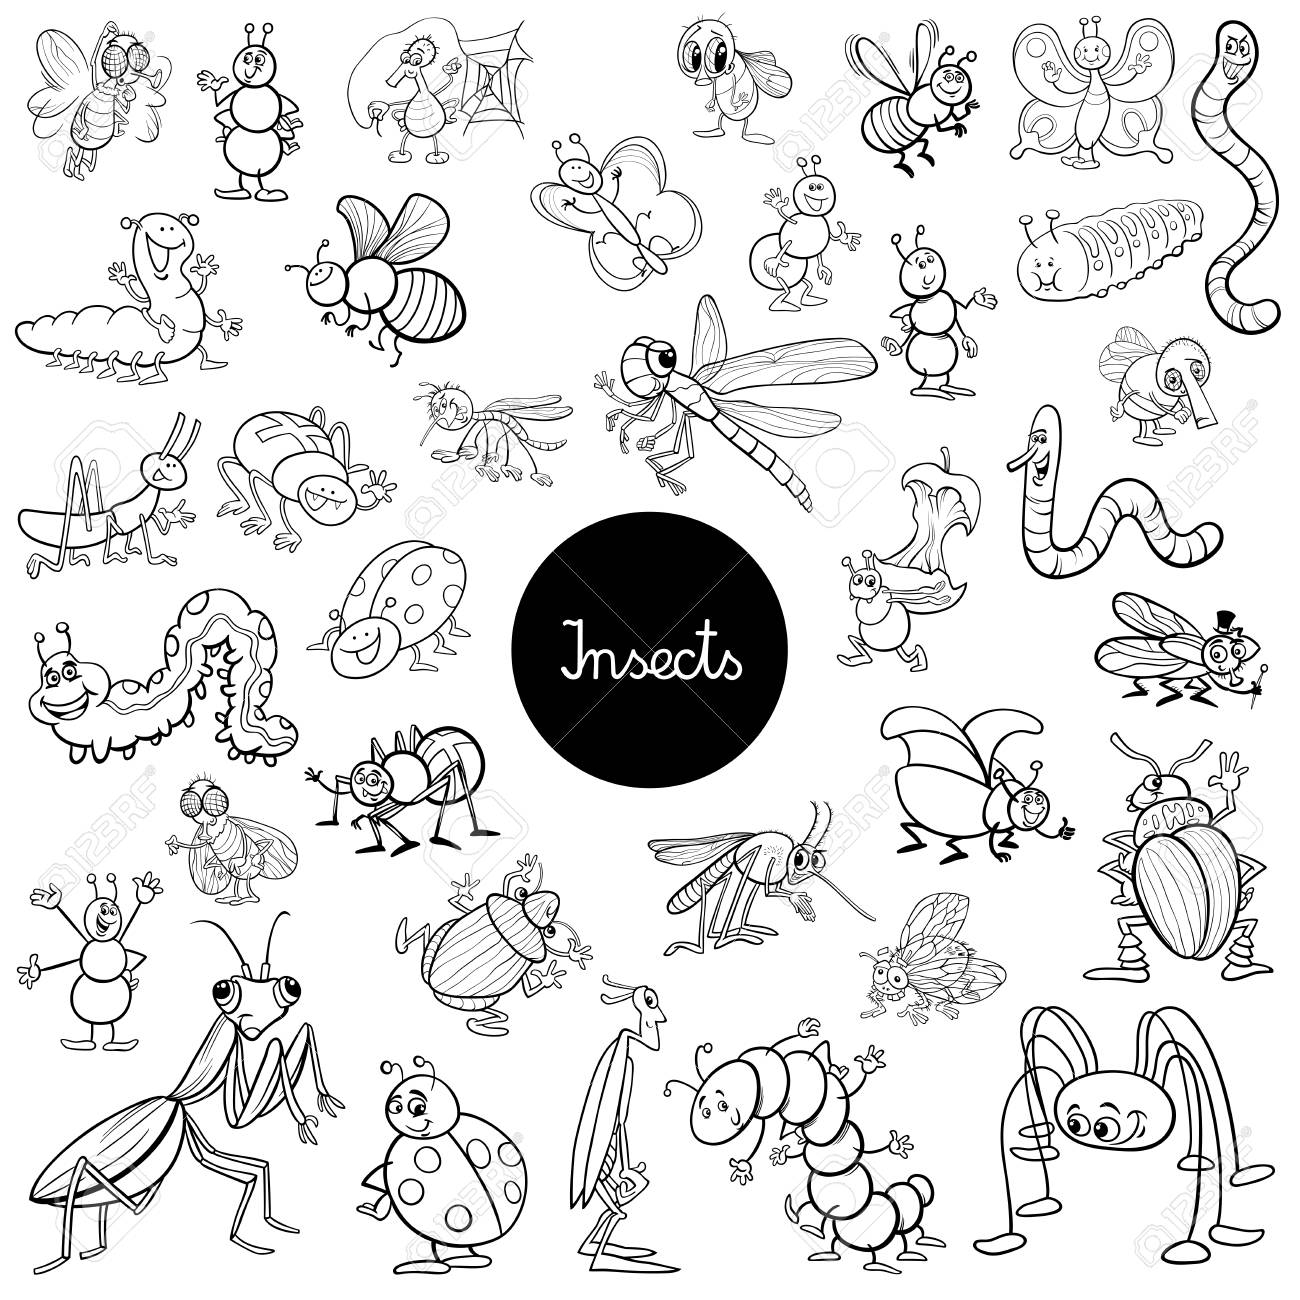 Black and White Cartoon Illustration of Insects Animal Characters..